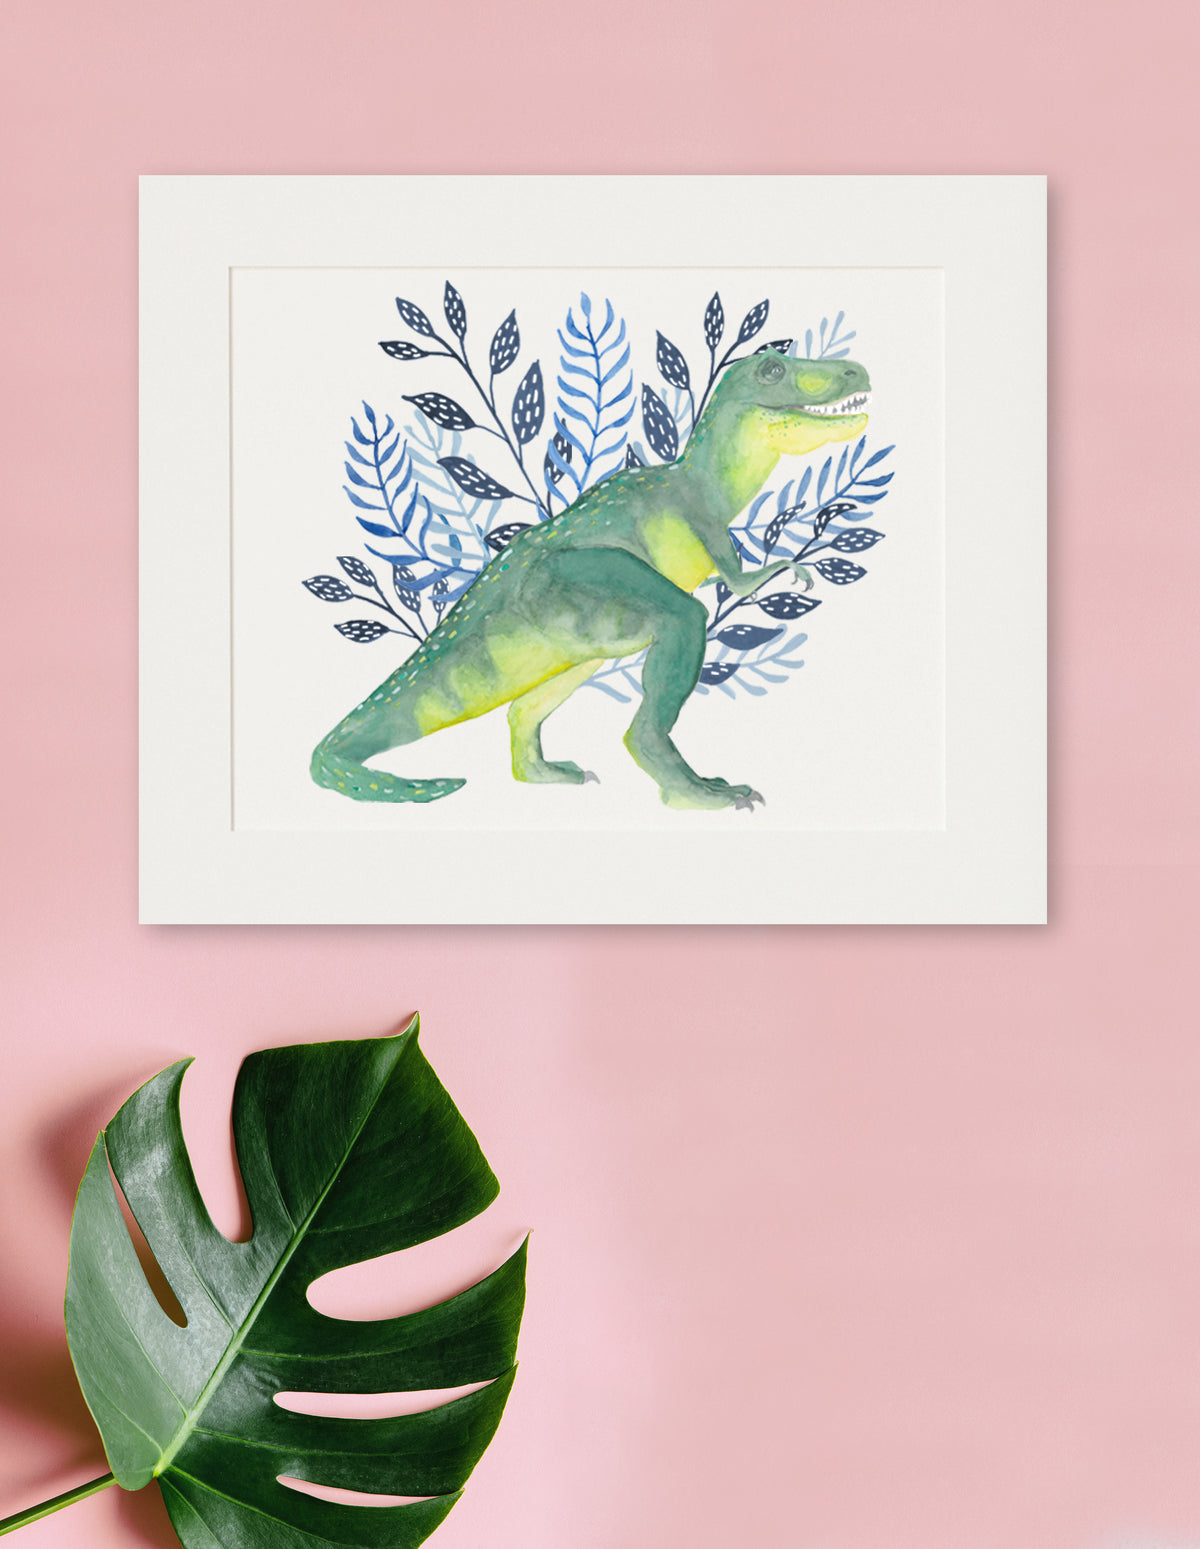 Dino - T-Rex Watercolor Print - Dinosaur Art